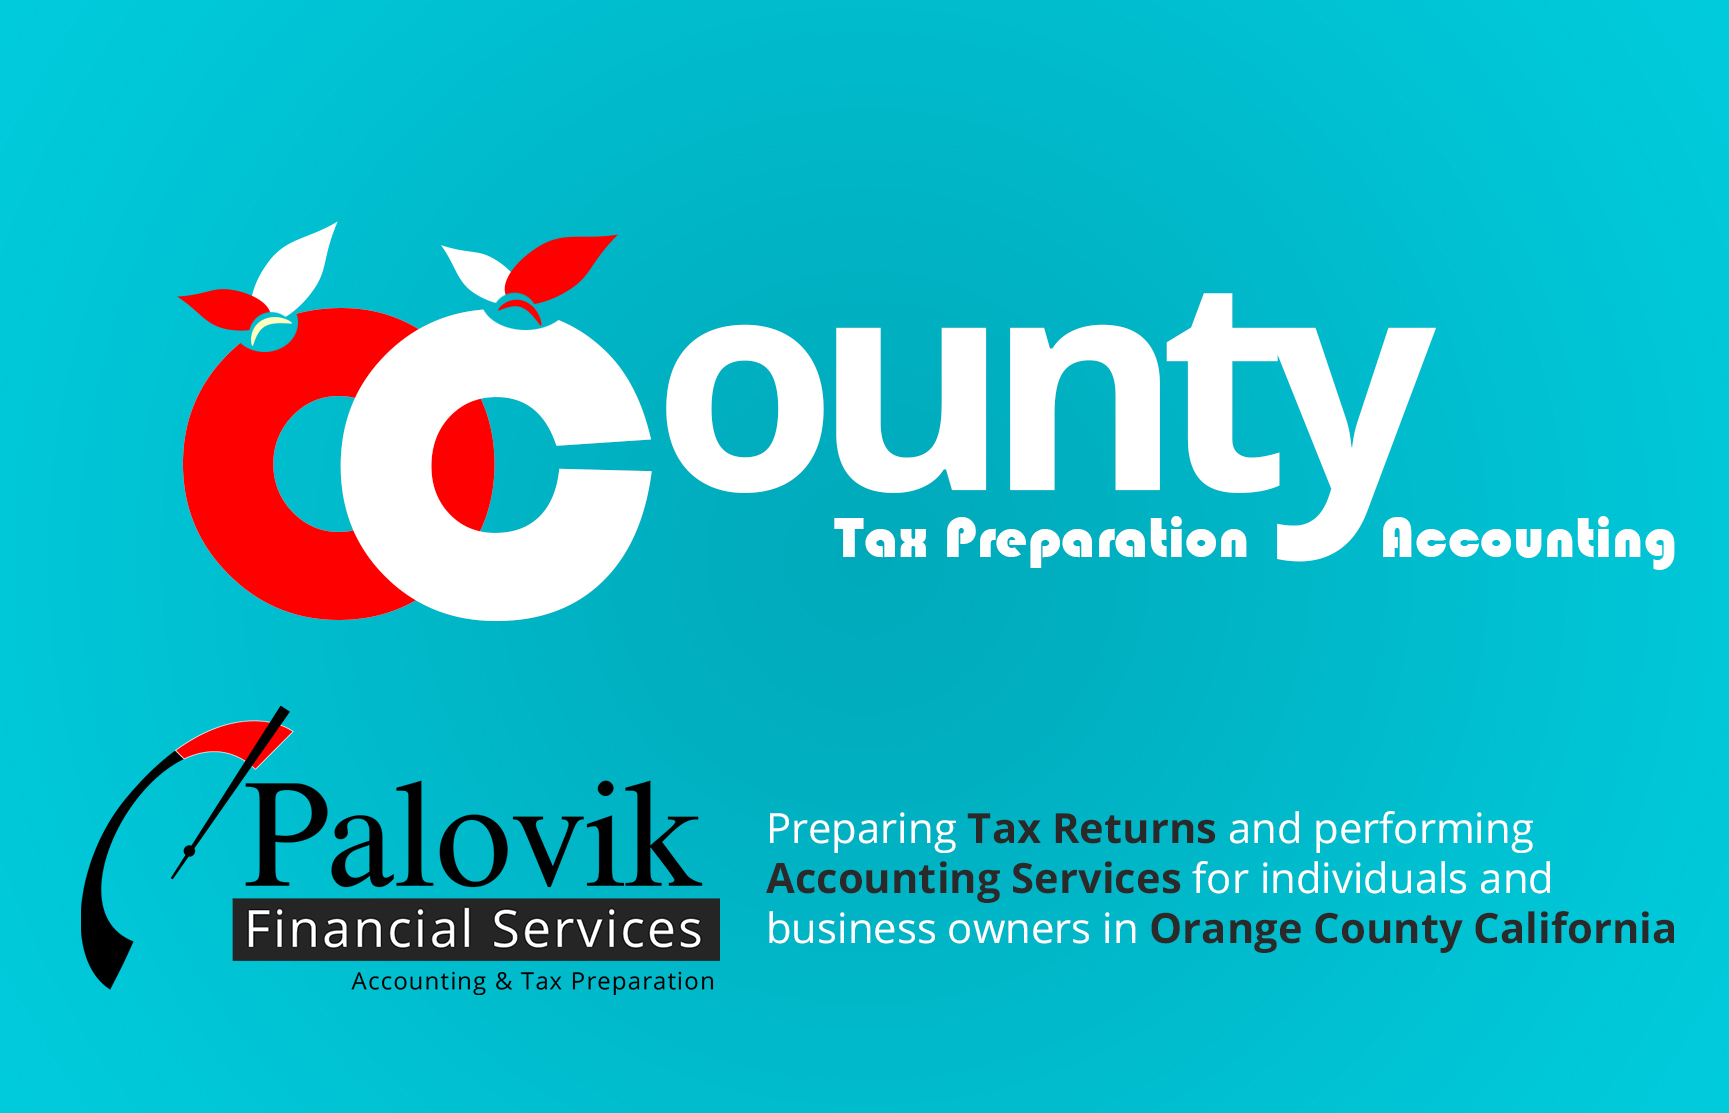 Orange County Accounty Services - Tax Preparers